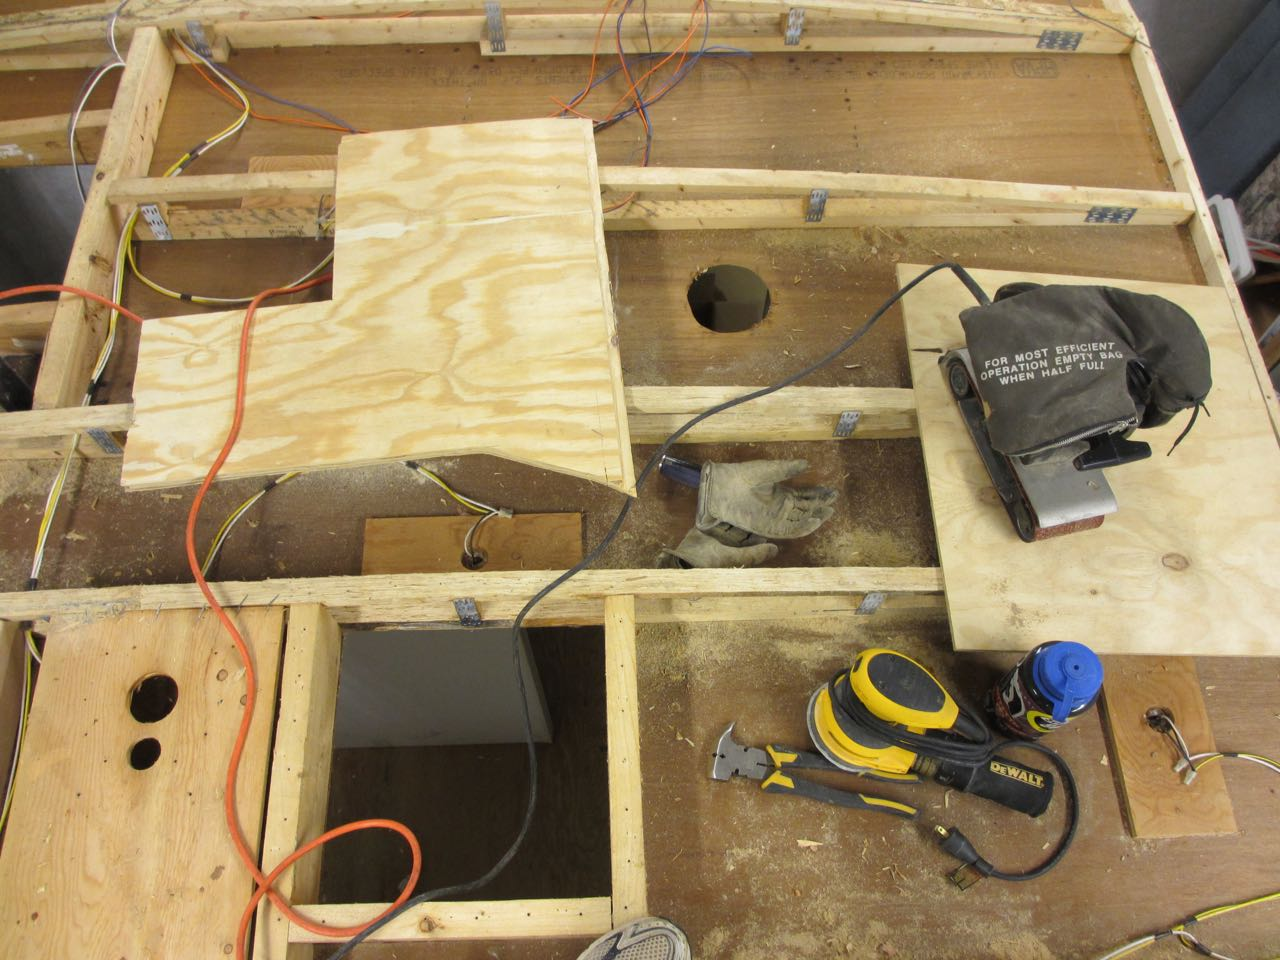 The set up on the roof to be able sand the roof beams. The weird shape board is used to sit/kneel on when sanding.